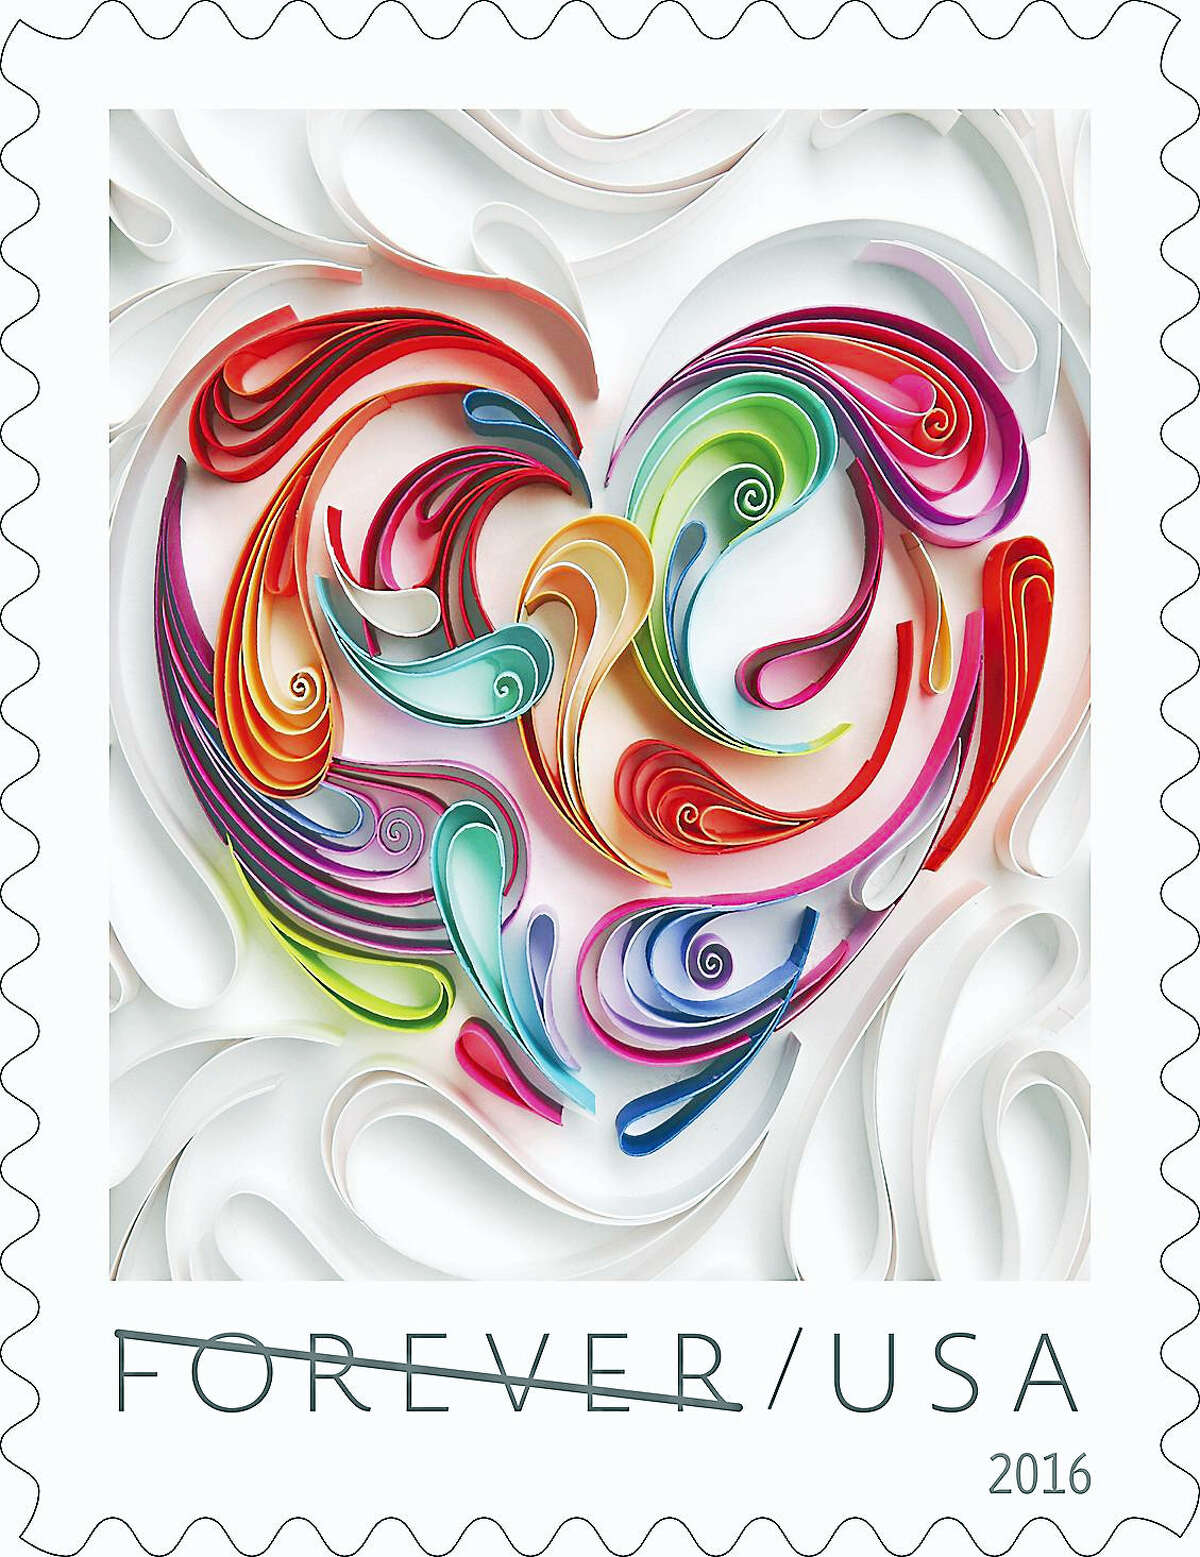 """The 2016 Love stamp — a Quilled Paper Heart Forever stamp. (The line through """"Forever"""" is no reflection on the love theme, said a postal spokesman; it's to prevent counterfeiting in this display only)."""